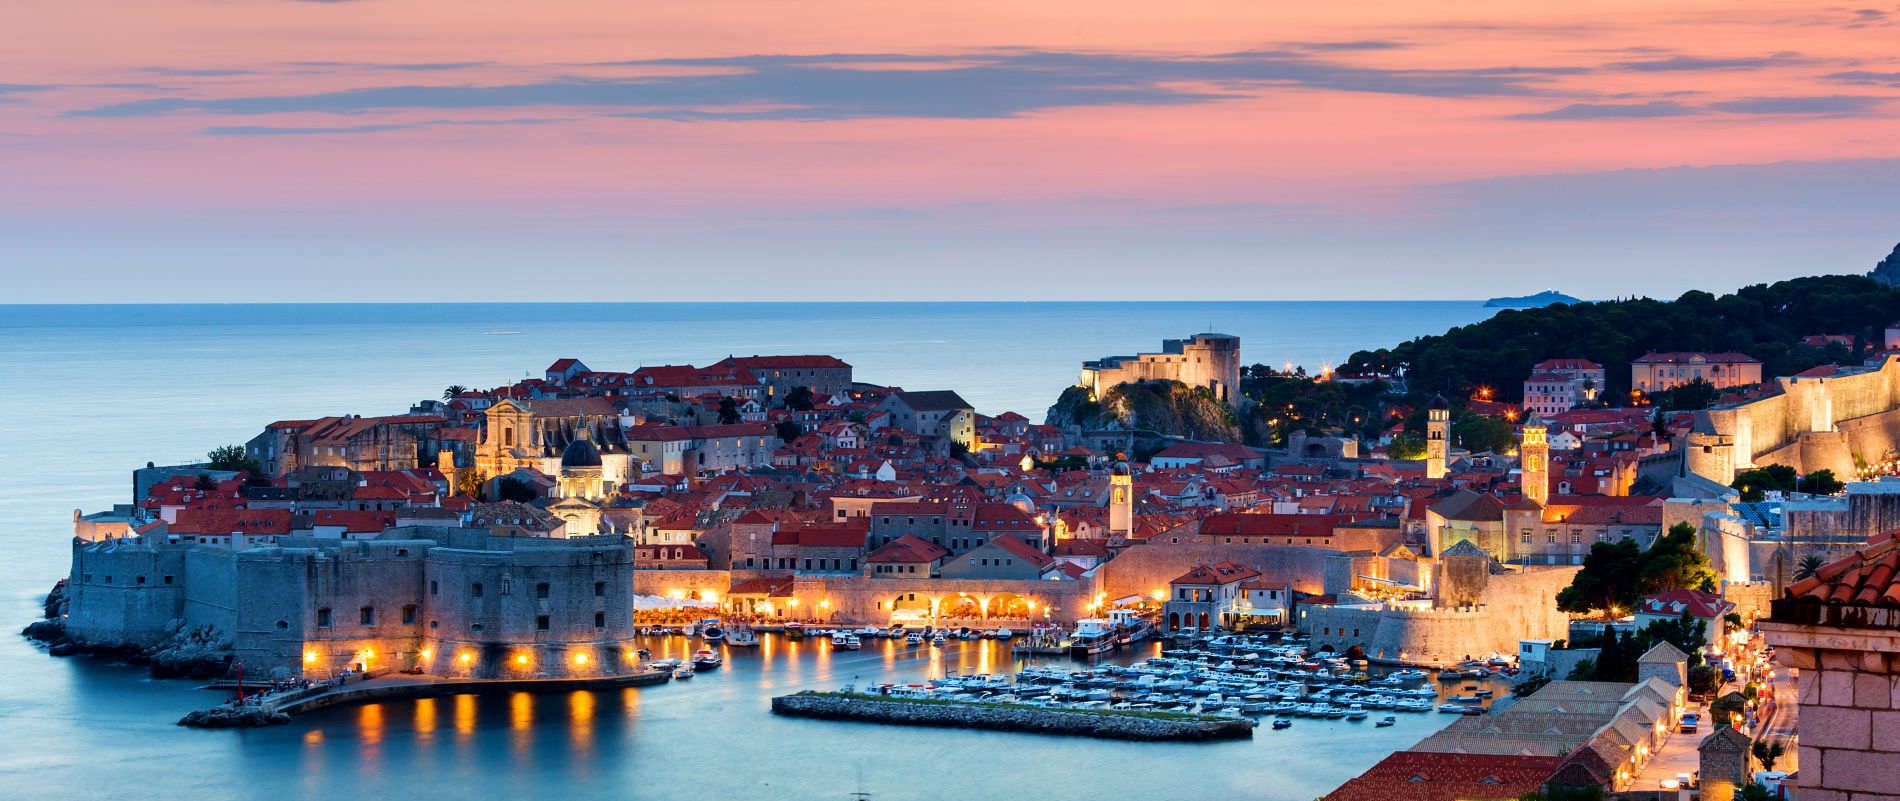 croatia-dubrovnik-sunset